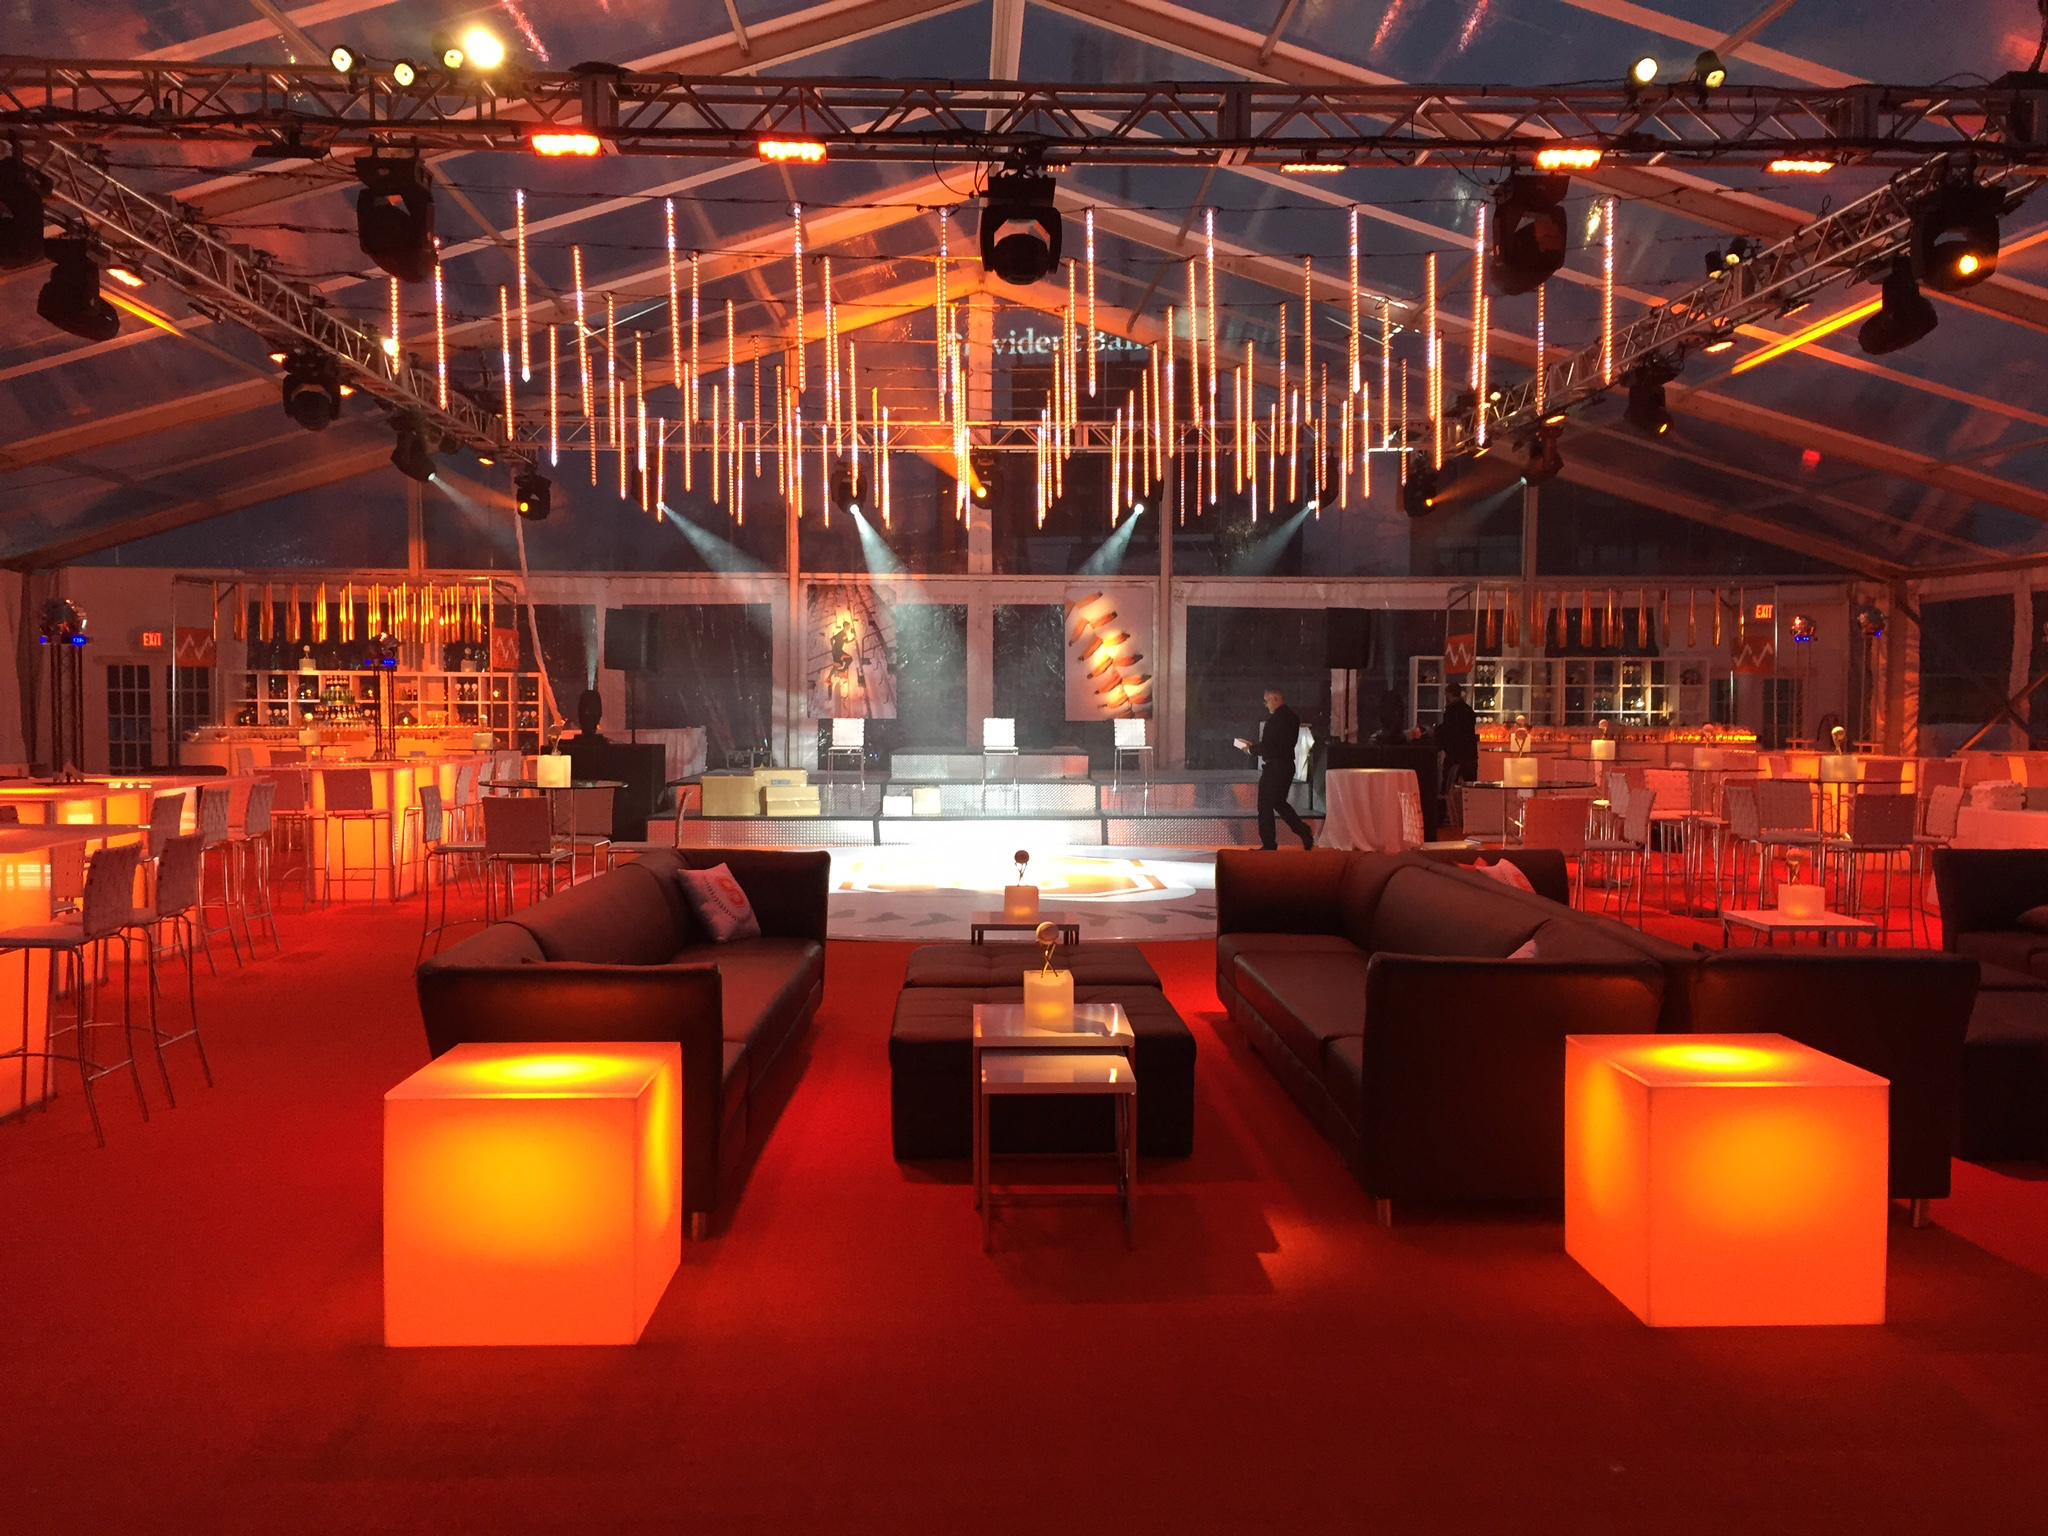 Eggsotic+Events+Lighting+Furniture+and+Decor+Meeting+Magazine+1.jpg